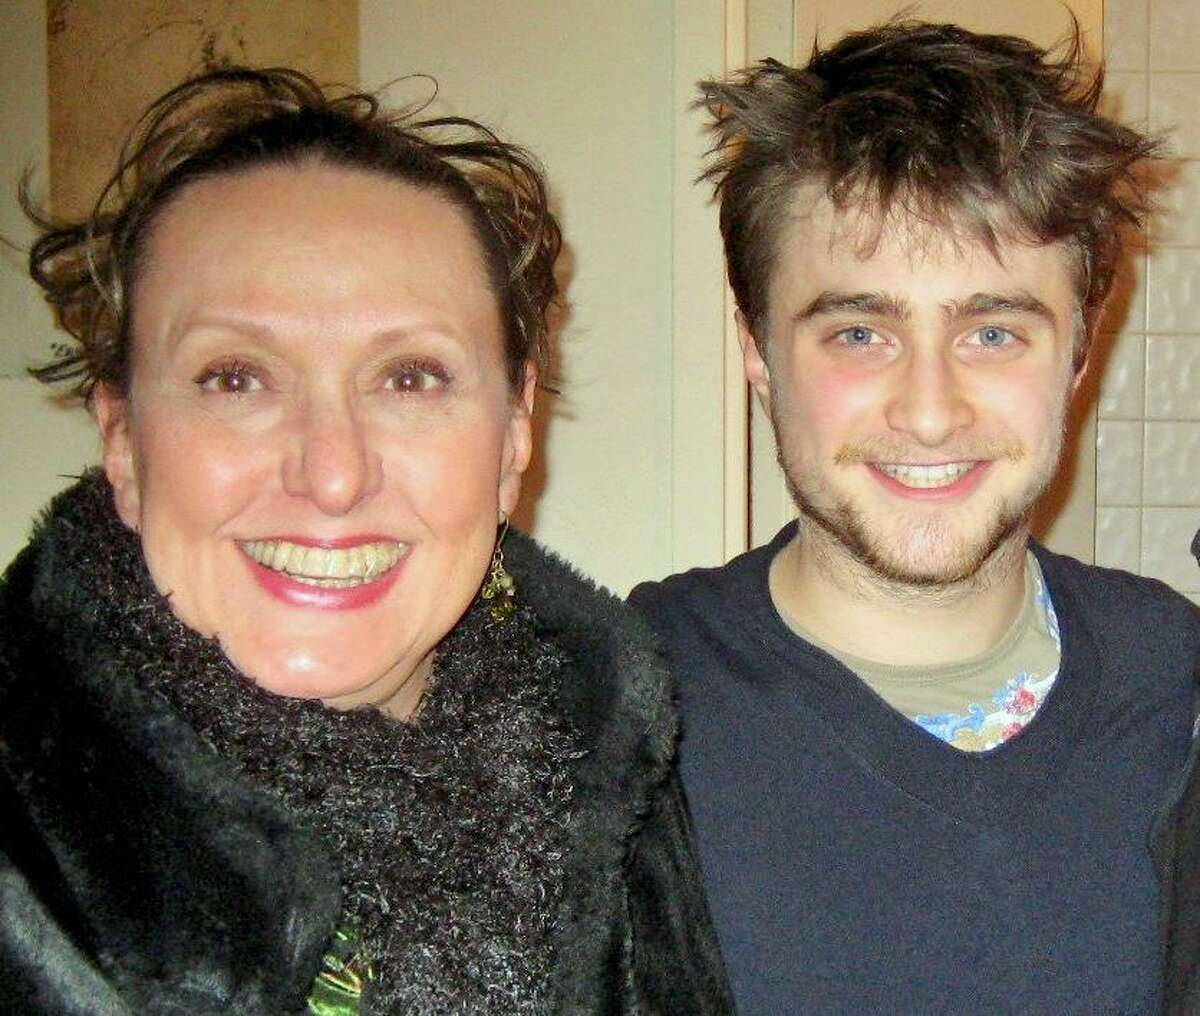 Voice teacher Jeannette LoVetri, who grew up in Greenwich, is a well-regarded voice teacher has worked with top-notch talent, including actor and Broadway star Daniel Radcliffe.